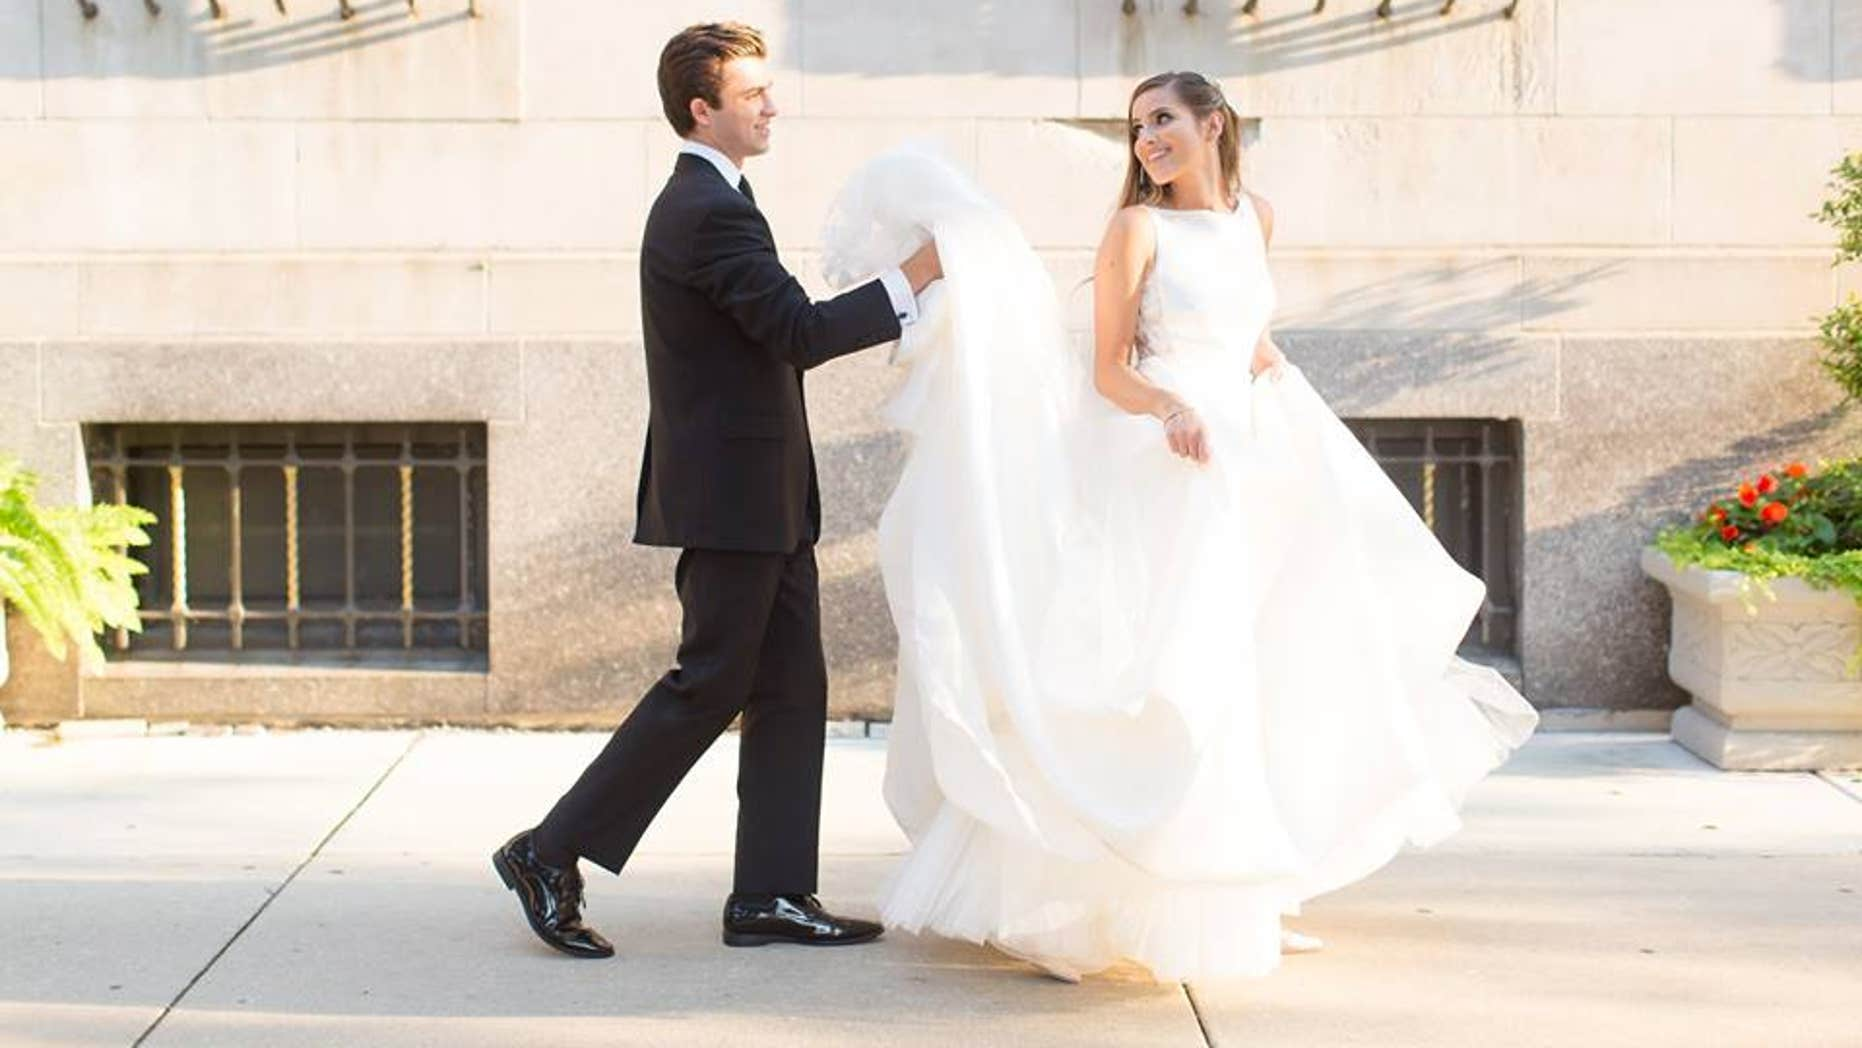 Christen and her husband Sam on their wedding day.